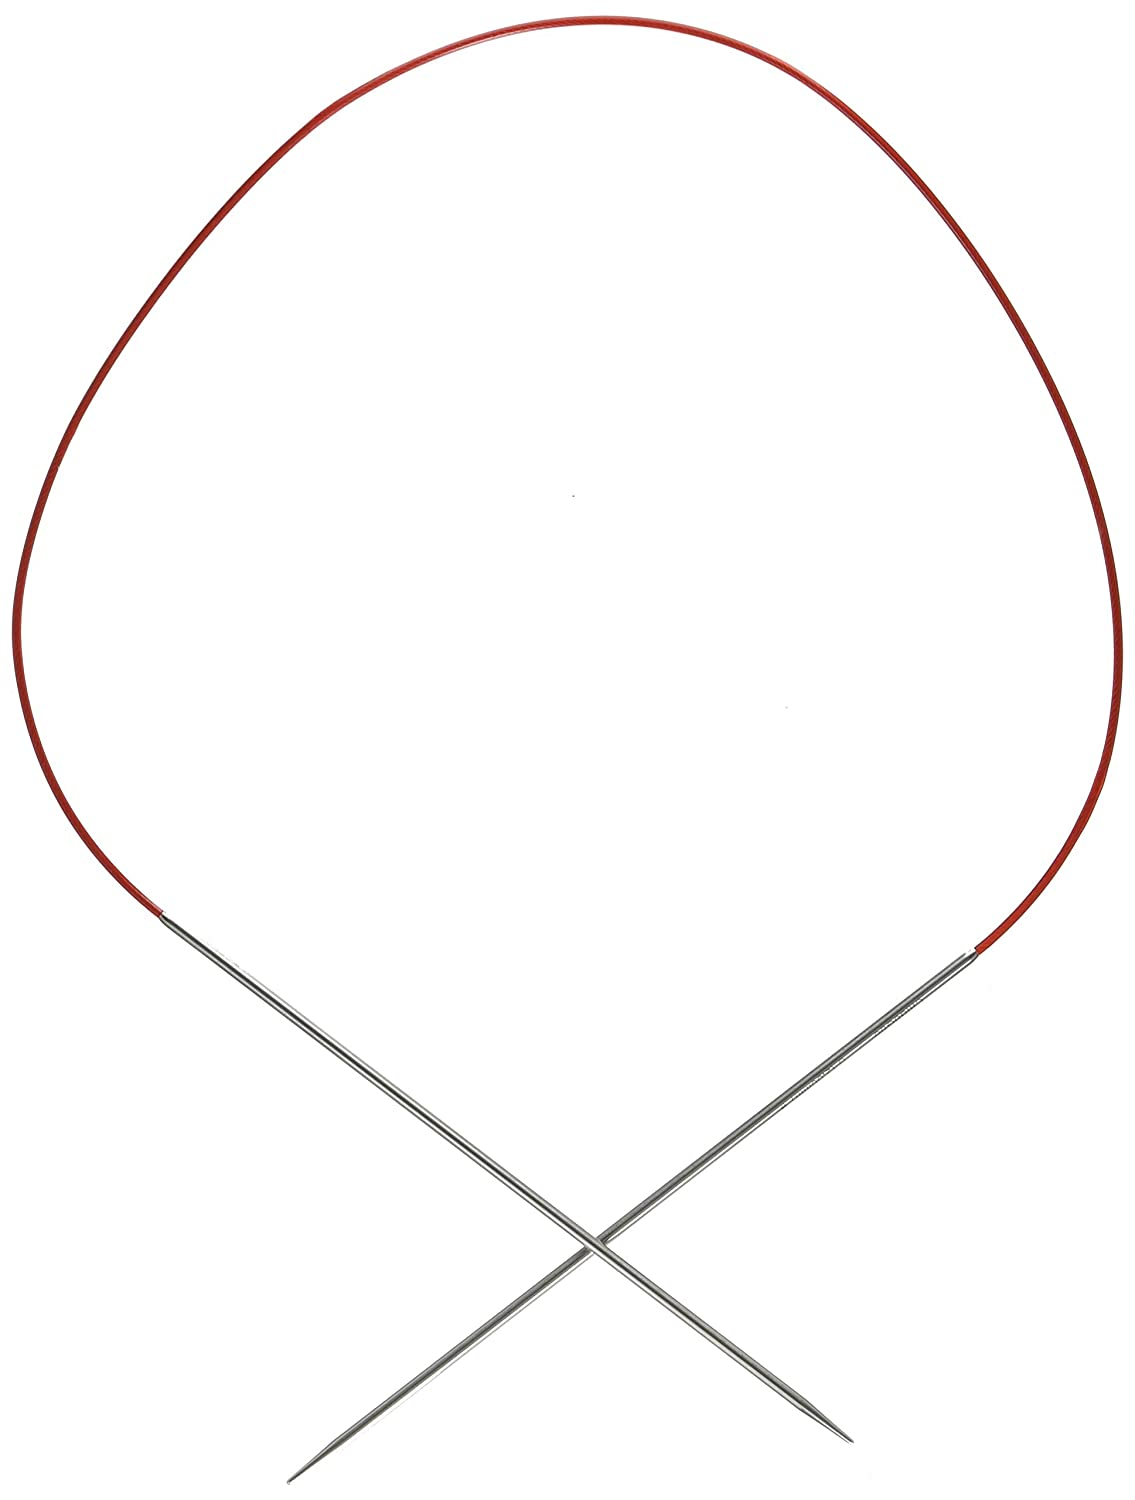 ChiaoGoo Red Lace Circular 24-inch (61cm) Stainless Steel Knitting Needle; Size US 5 (3.75mm) 7024-5